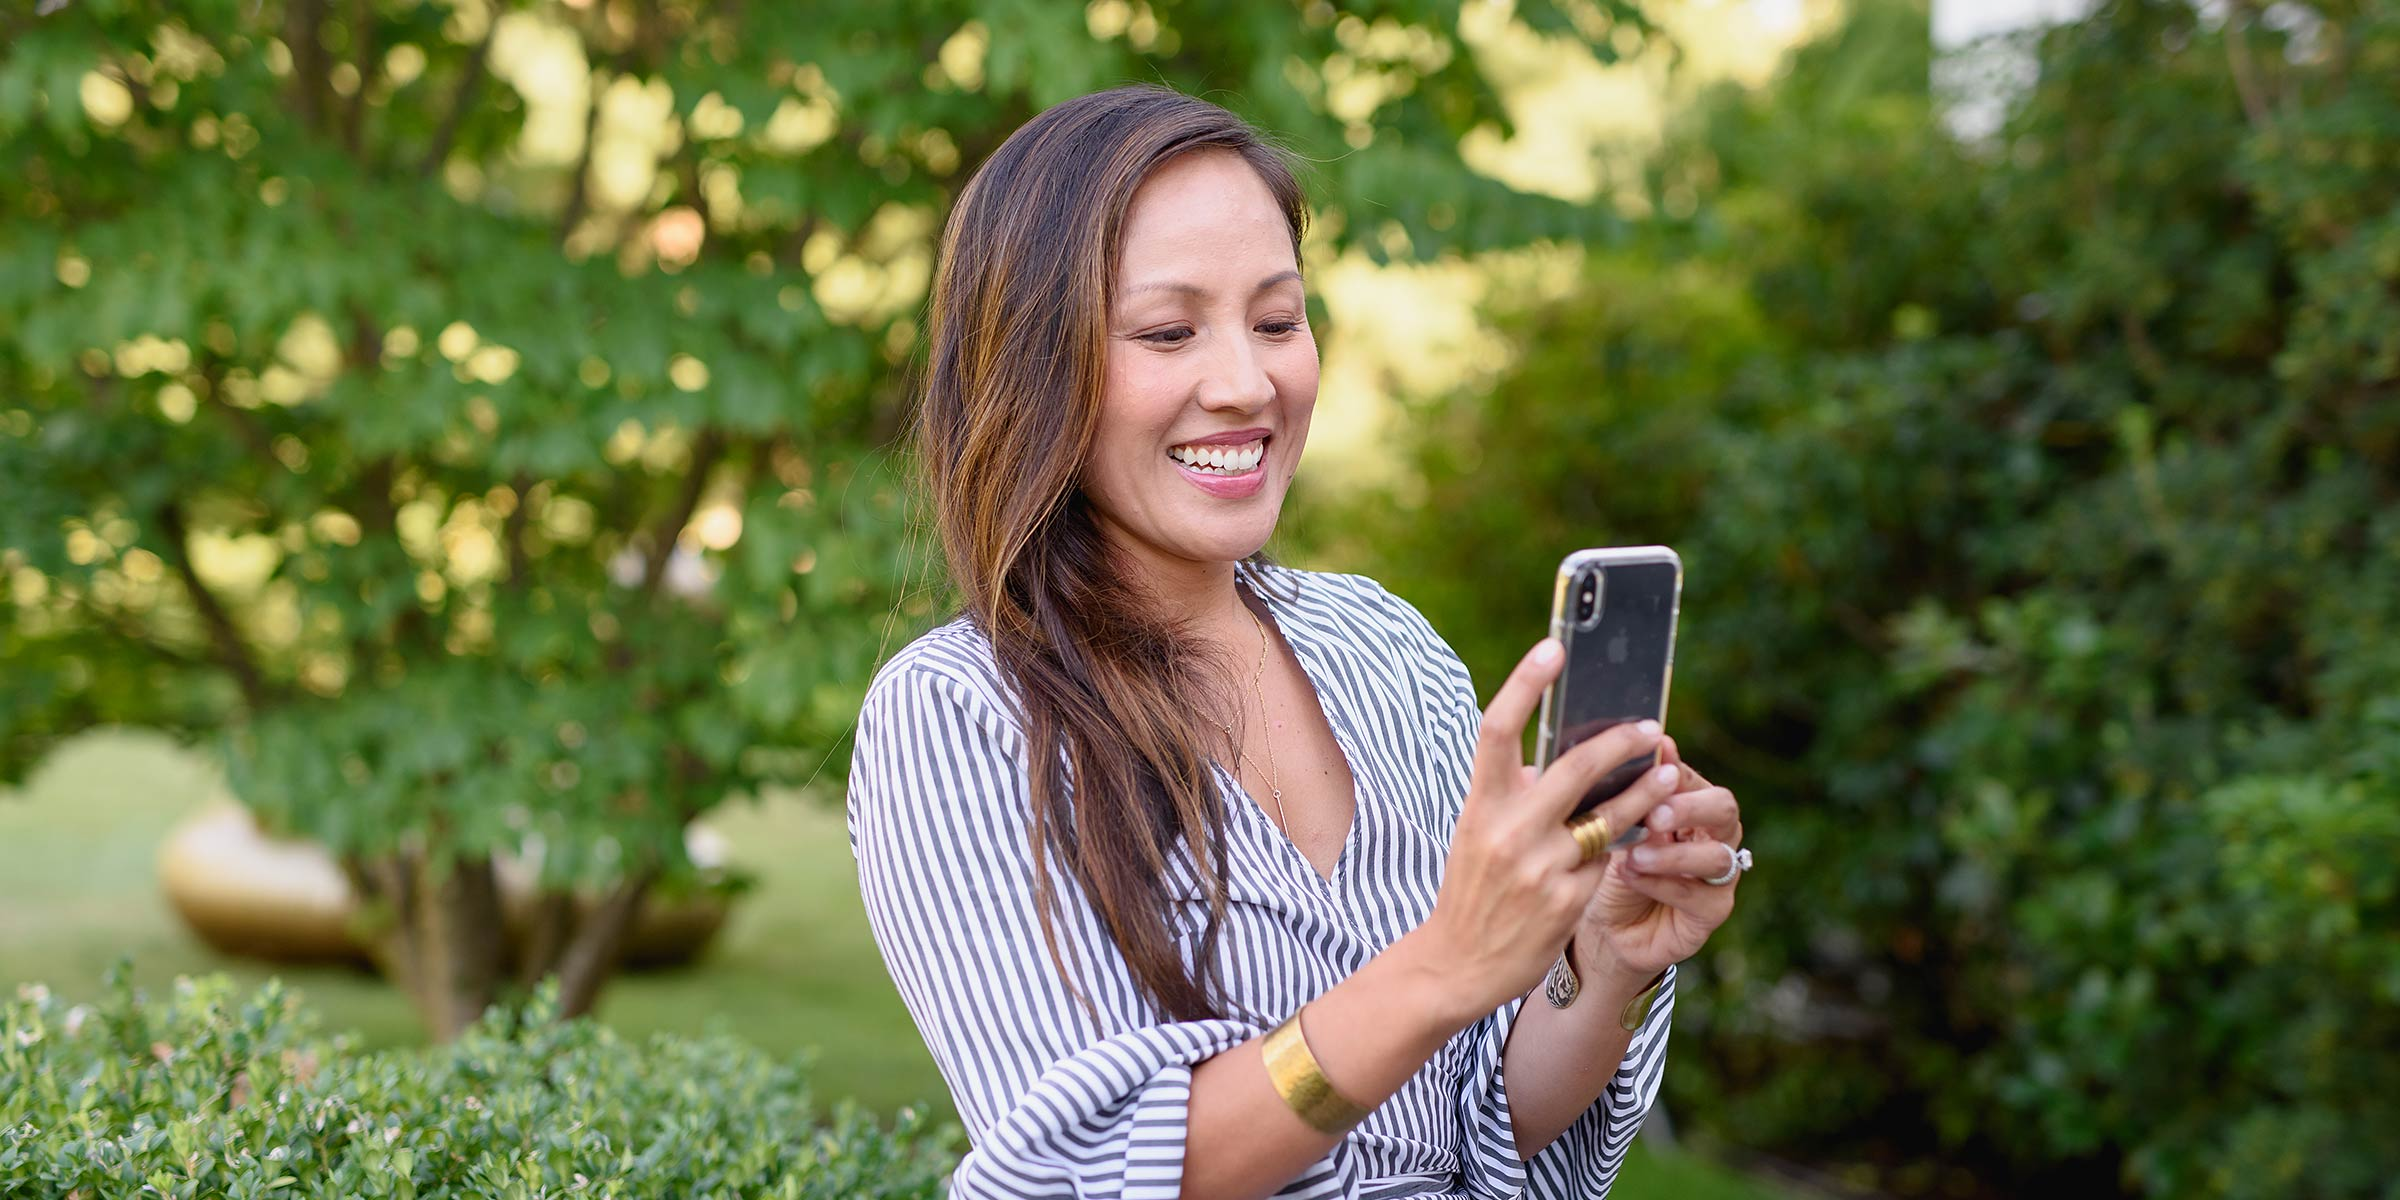 Image of a woman capturing Instagram story on her phone. Lifestyle personal branding portrait by N. Lalor Photography. Serving Fairfield County, Connecticut.